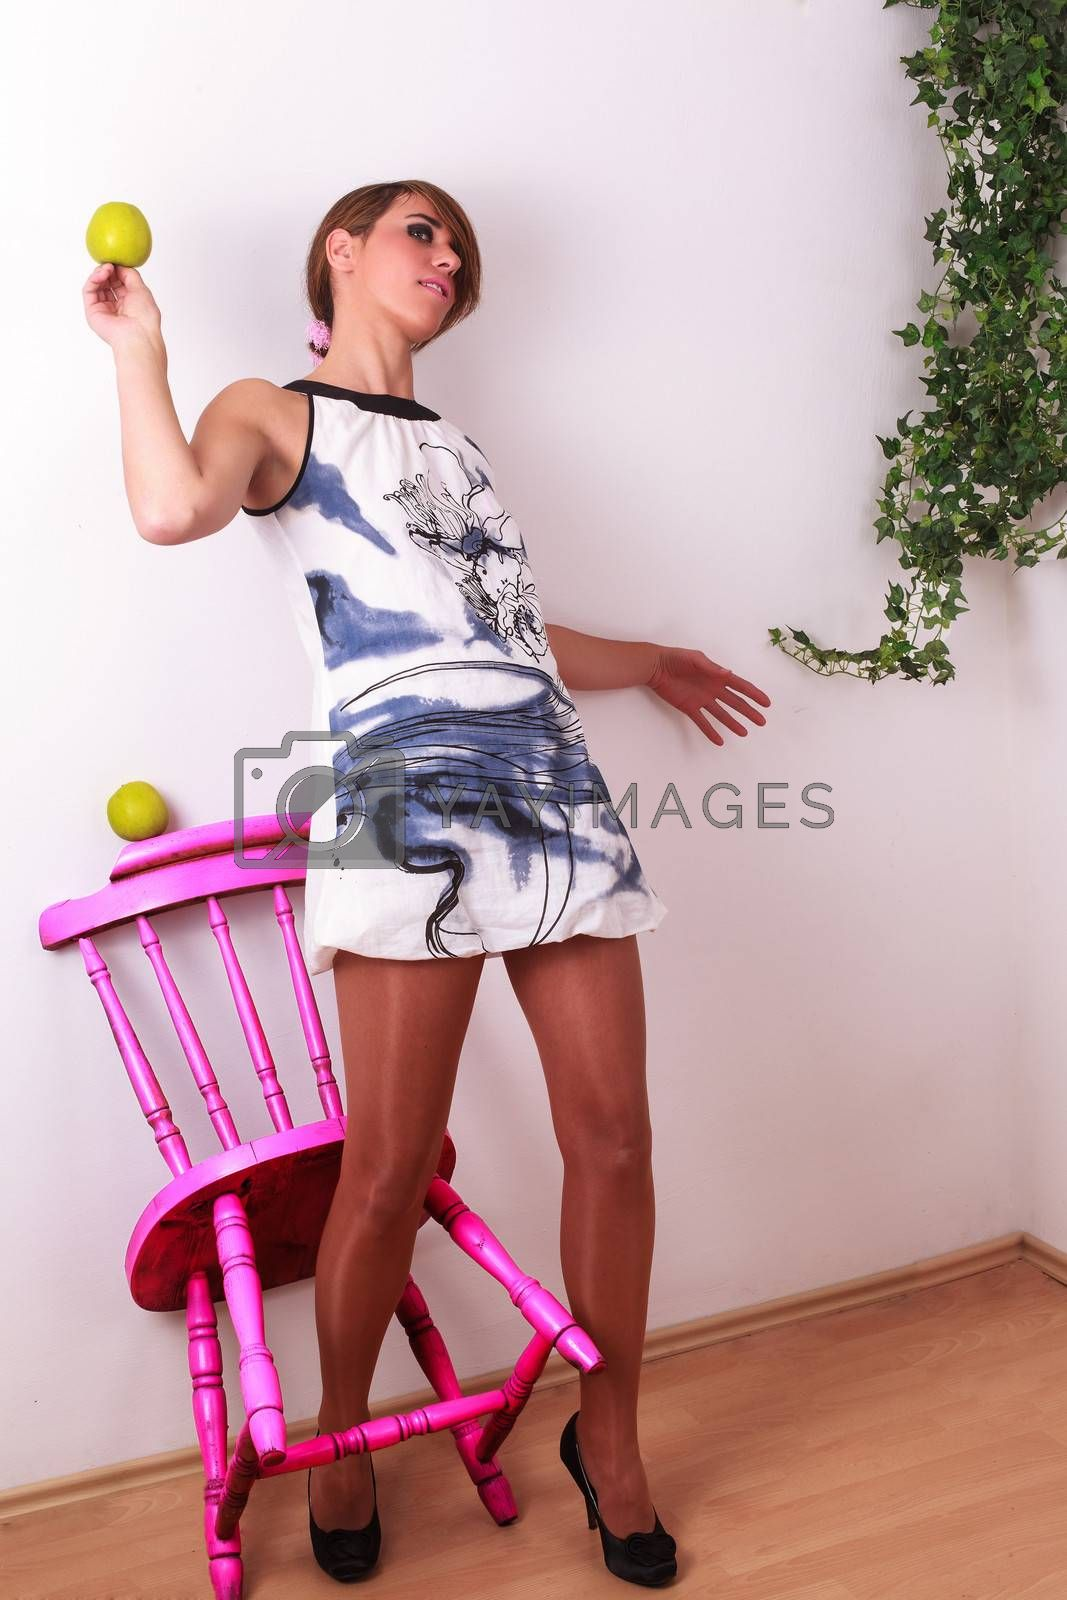 Backward to the wall ajar female beauty, with apple in hand, with one leg between the chair legs of a pink chair